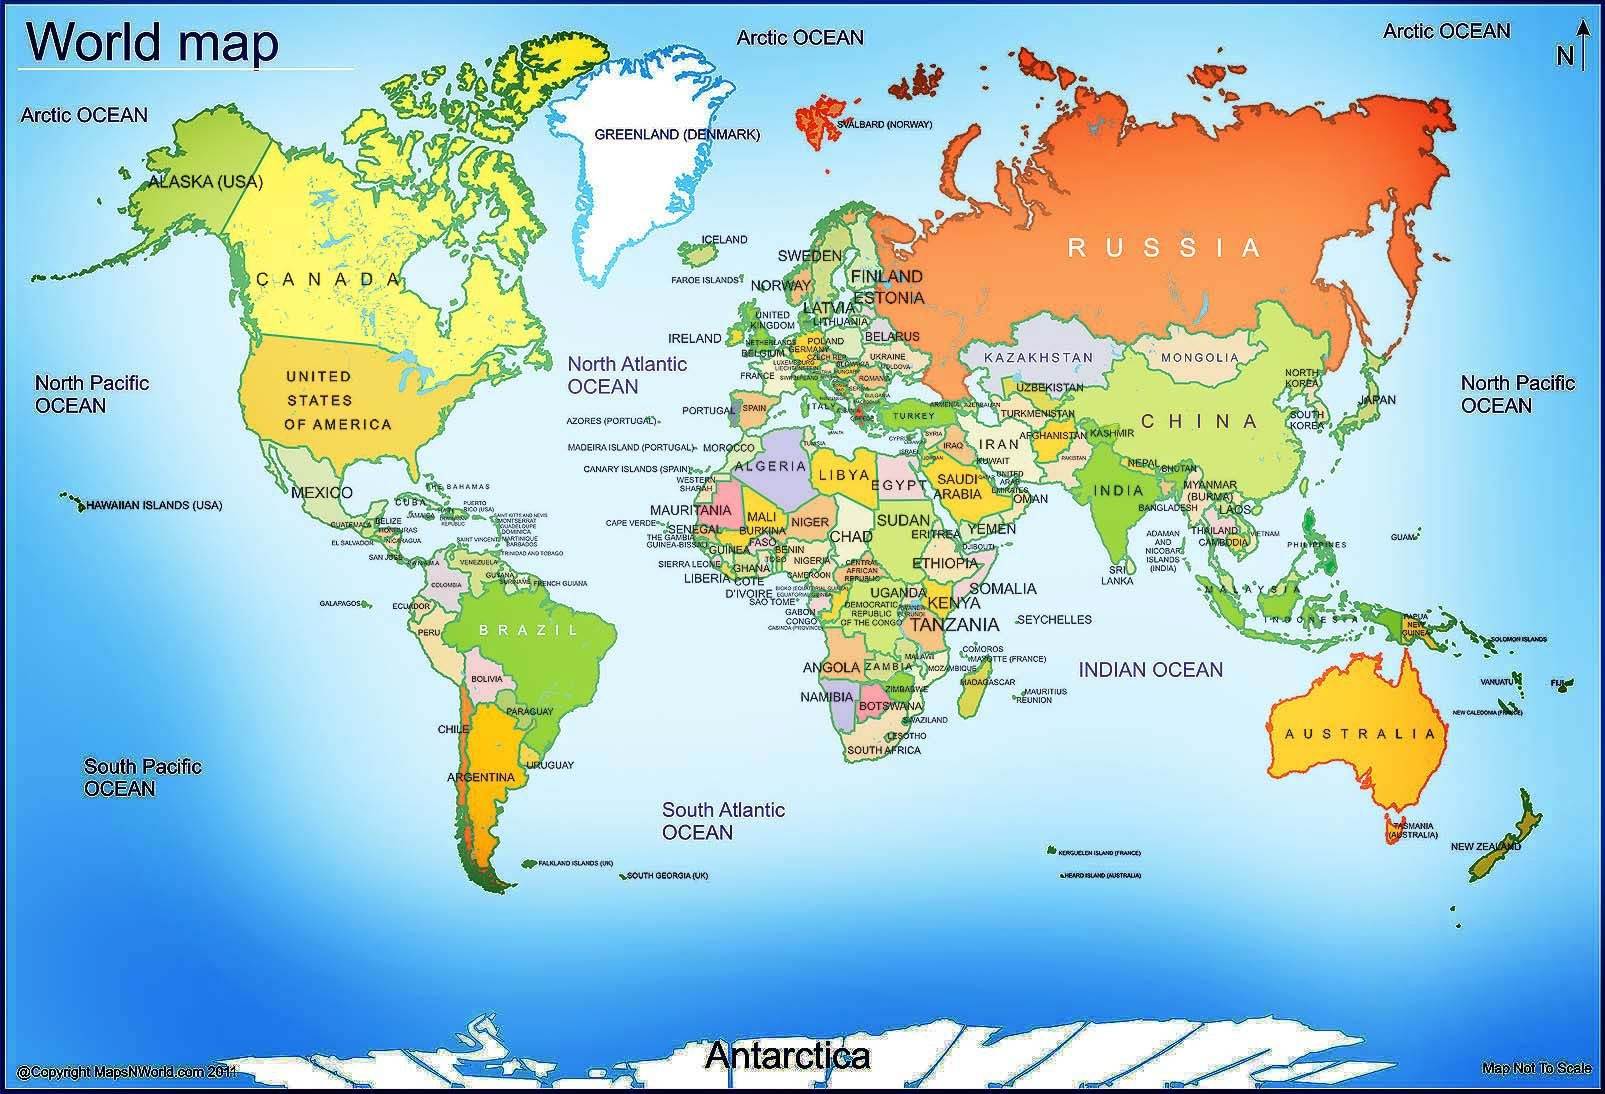 World Map - Free Large Images   Maps   World Map With Countries - Free Printable World Map Images